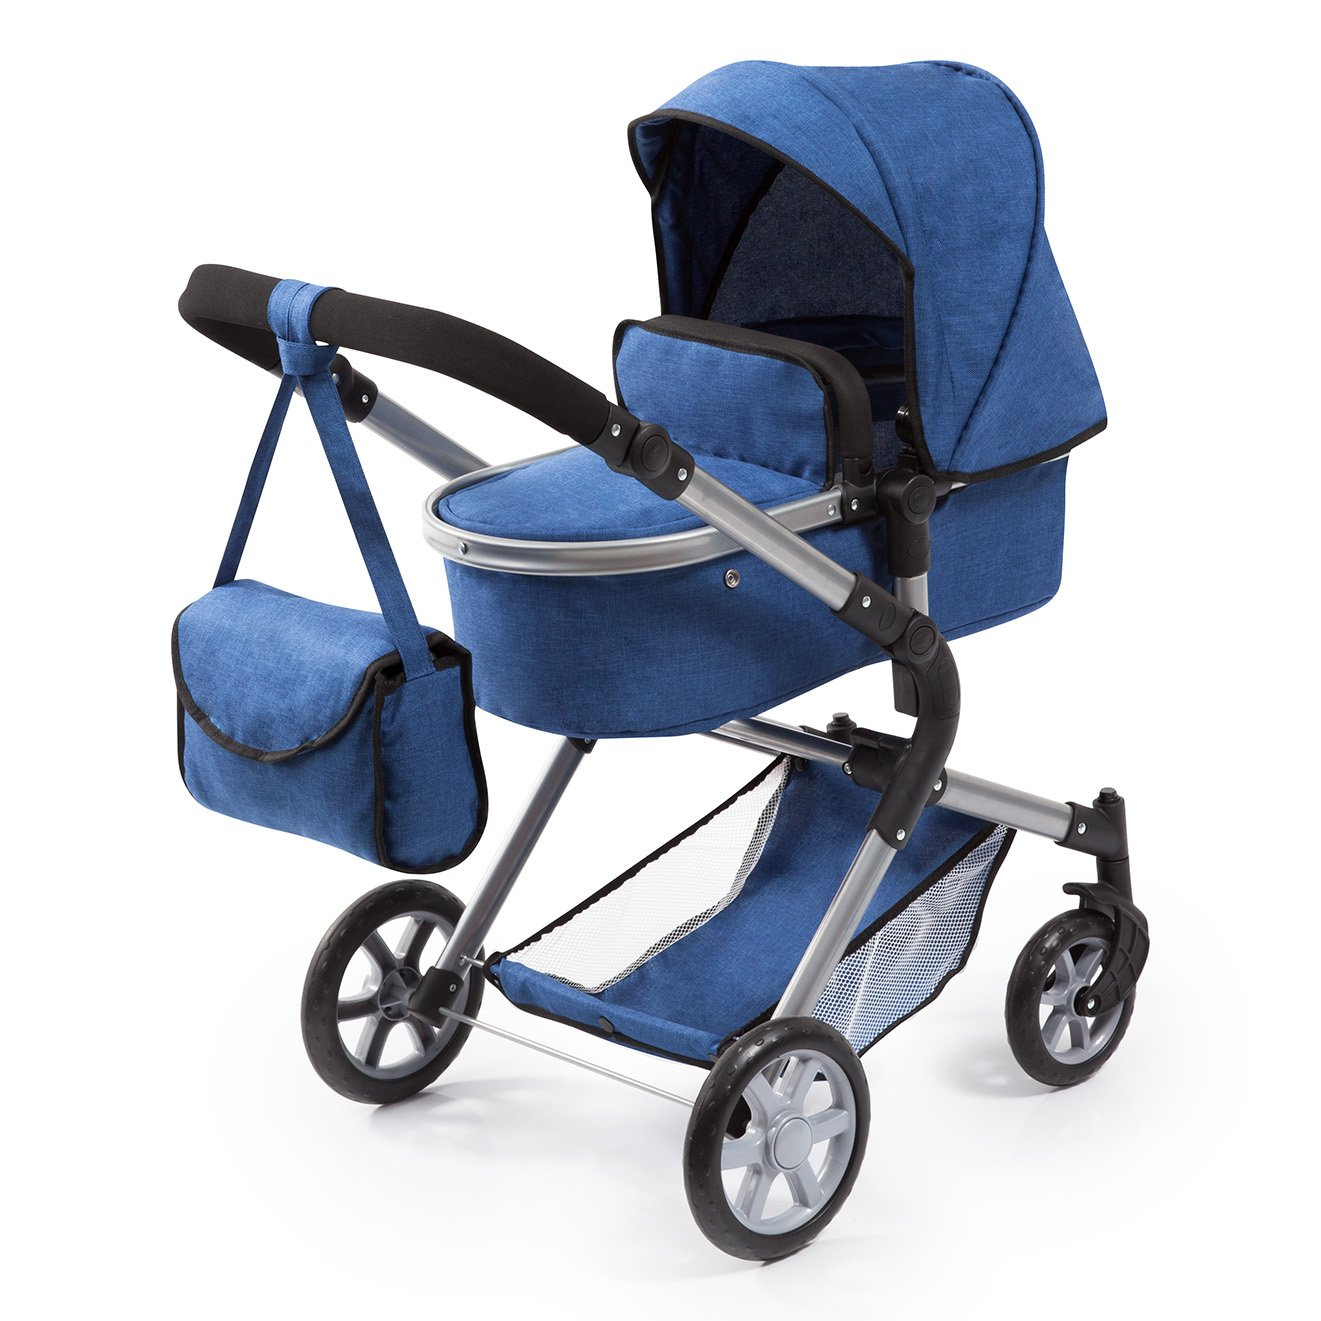 Bayer Design 18135AA City Neo Doll's Pram with Bag and Underneath Shopping Basket, Blue Bayer-Design